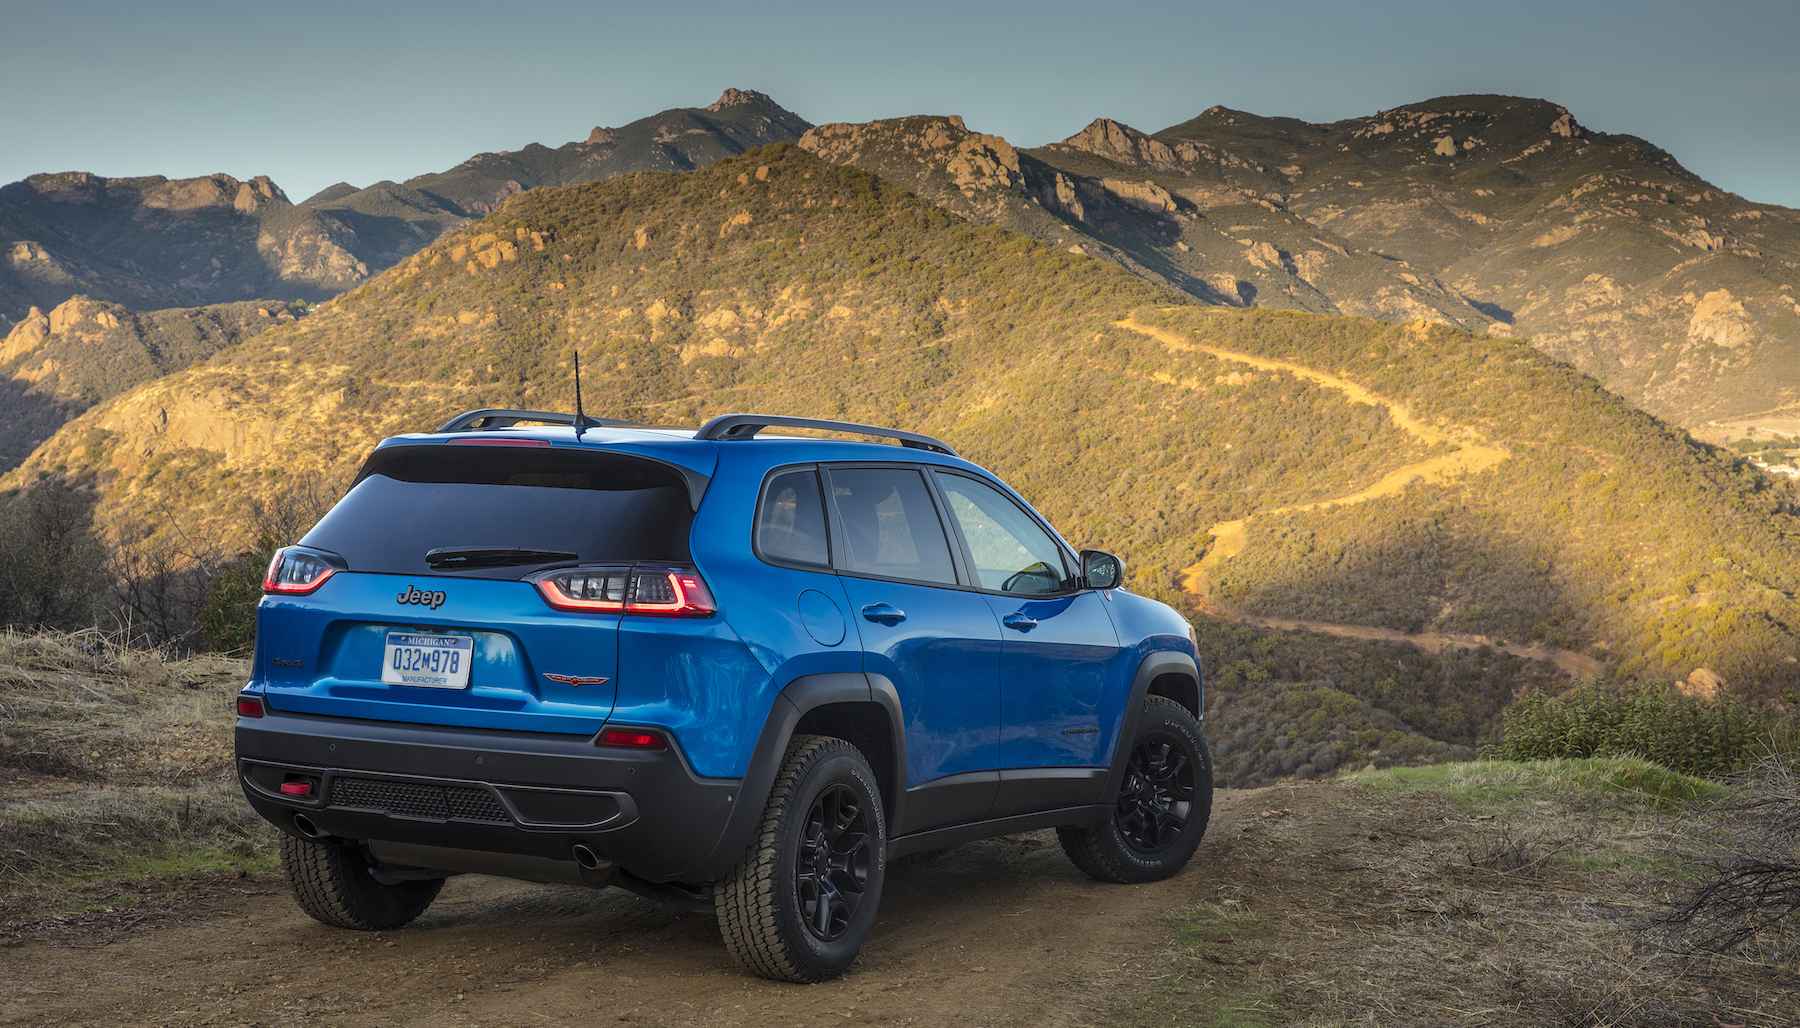 2019 jeep cherokee first drive in photos driving today. Black Bedroom Furniture Sets. Home Design Ideas